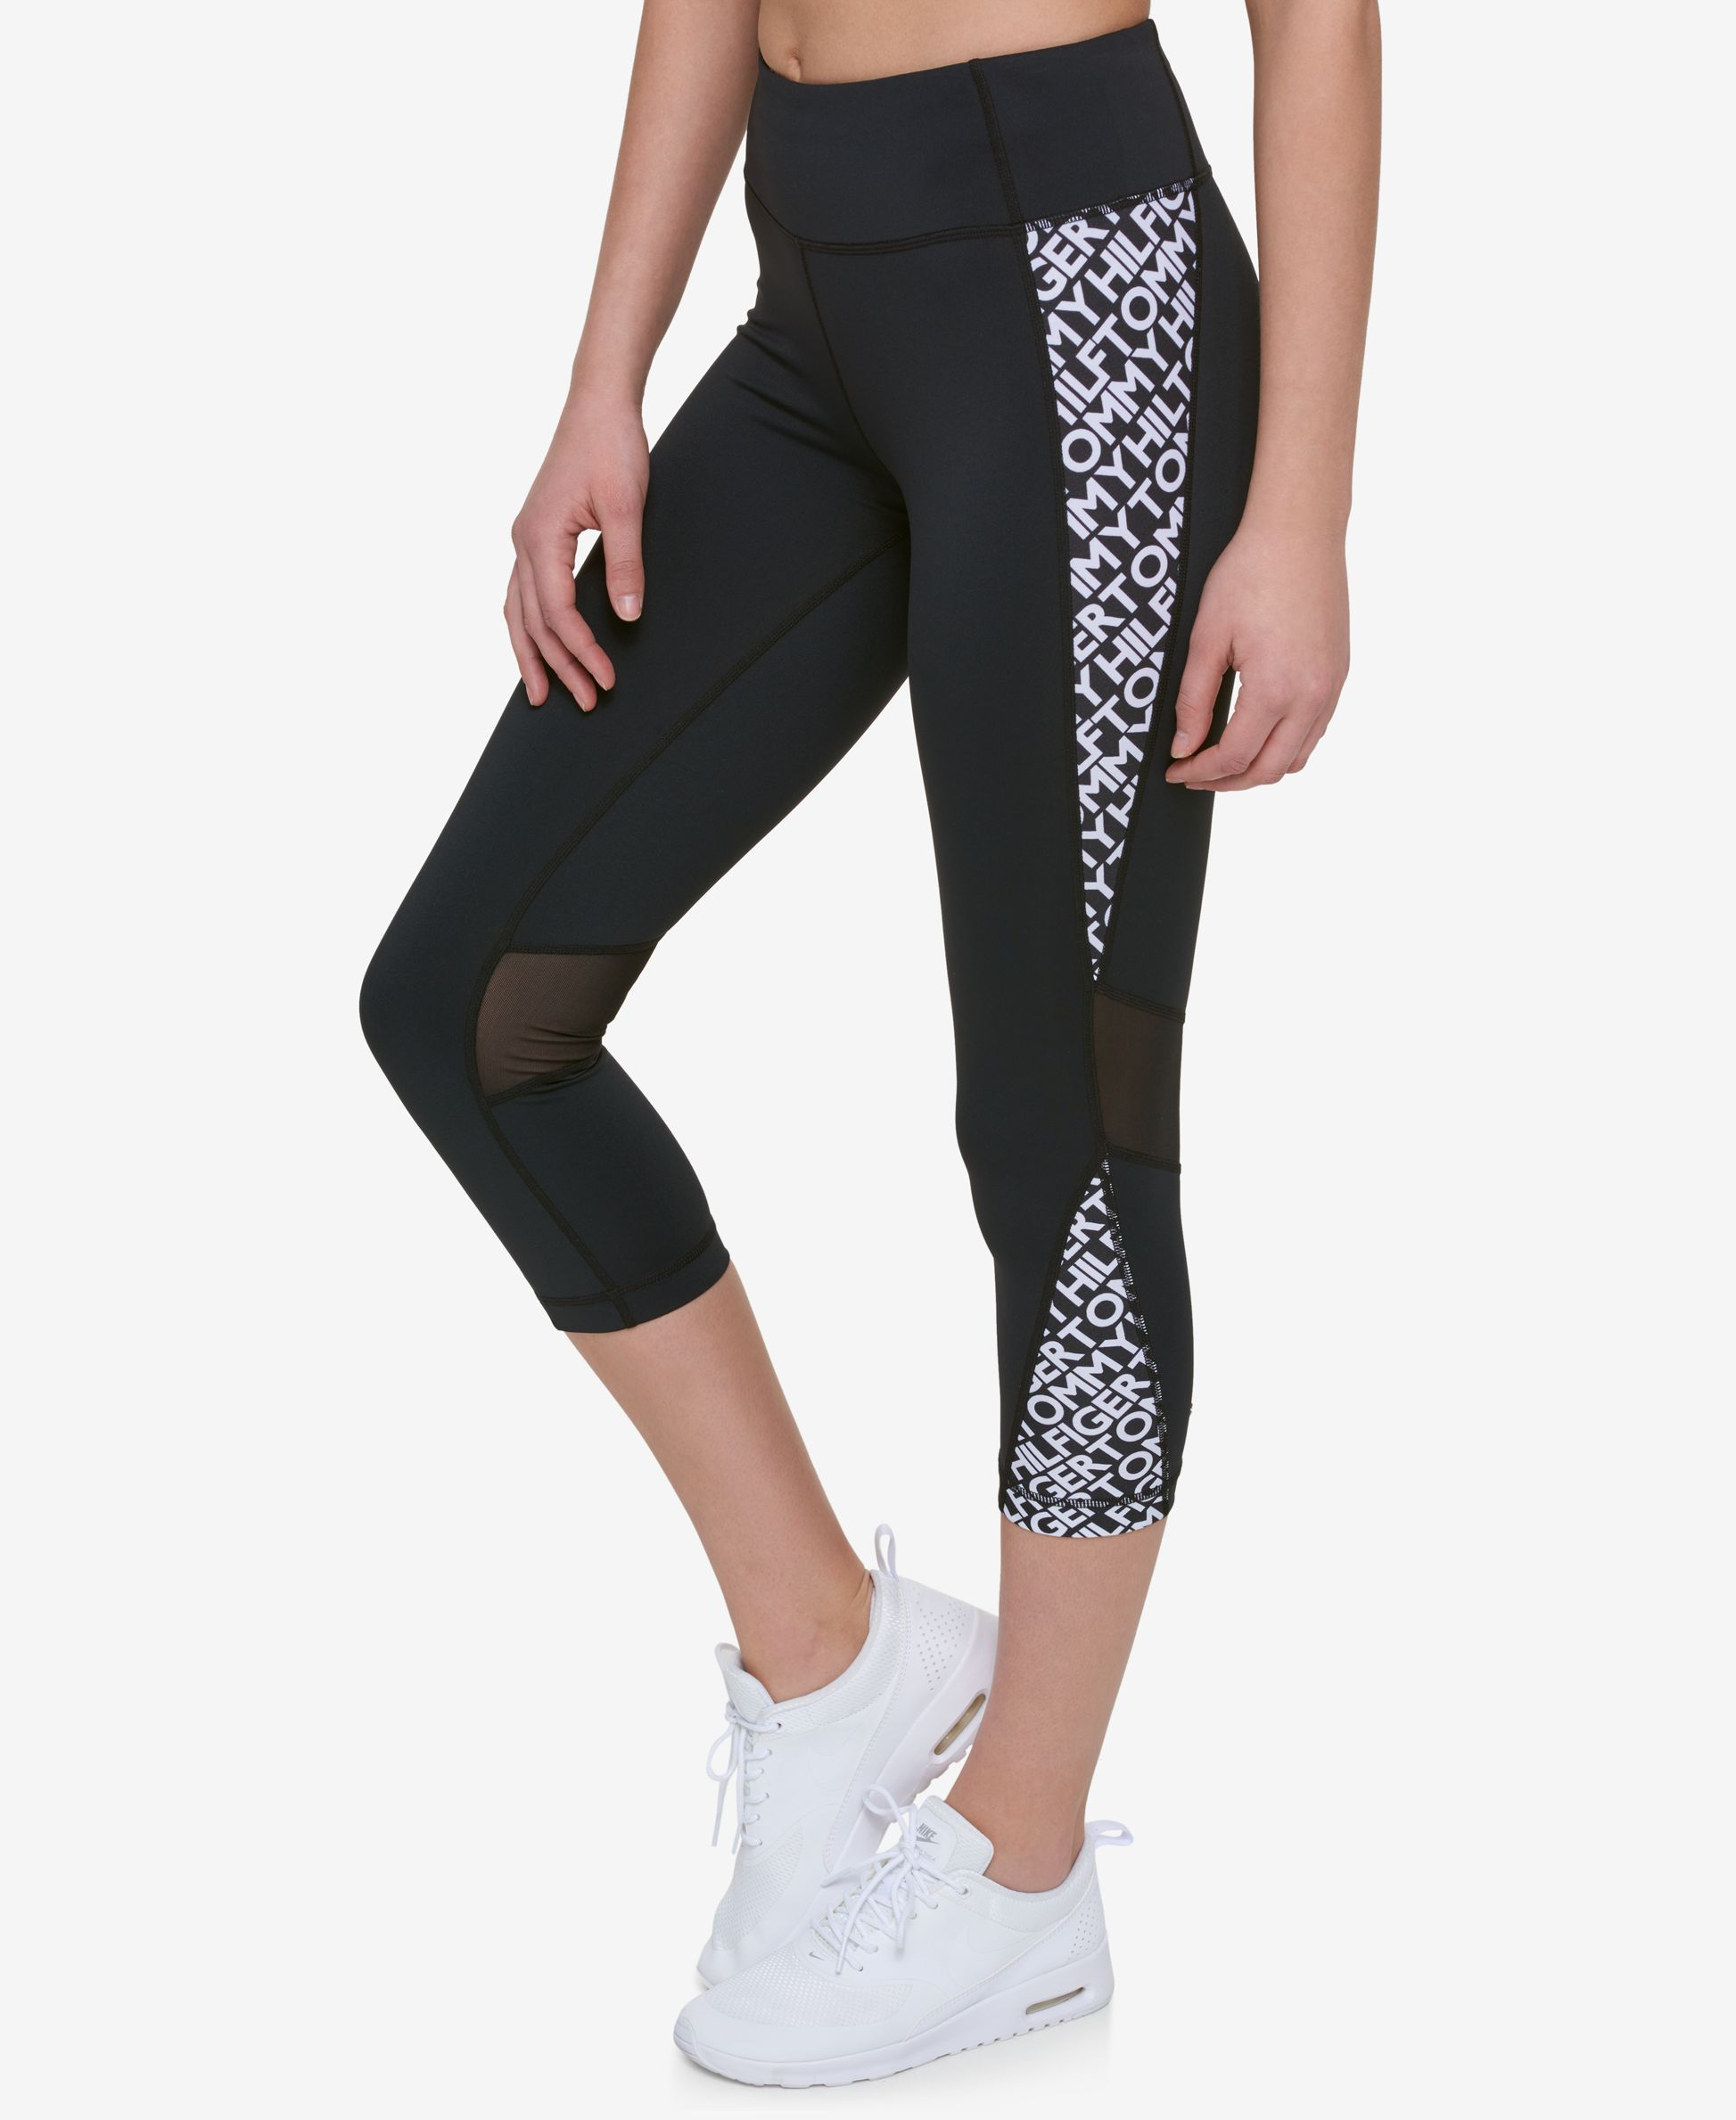 d10b206eb2965 Tommy Hilfiger Sport Colorblocked Skinny Leggings, Only at Macy's ...